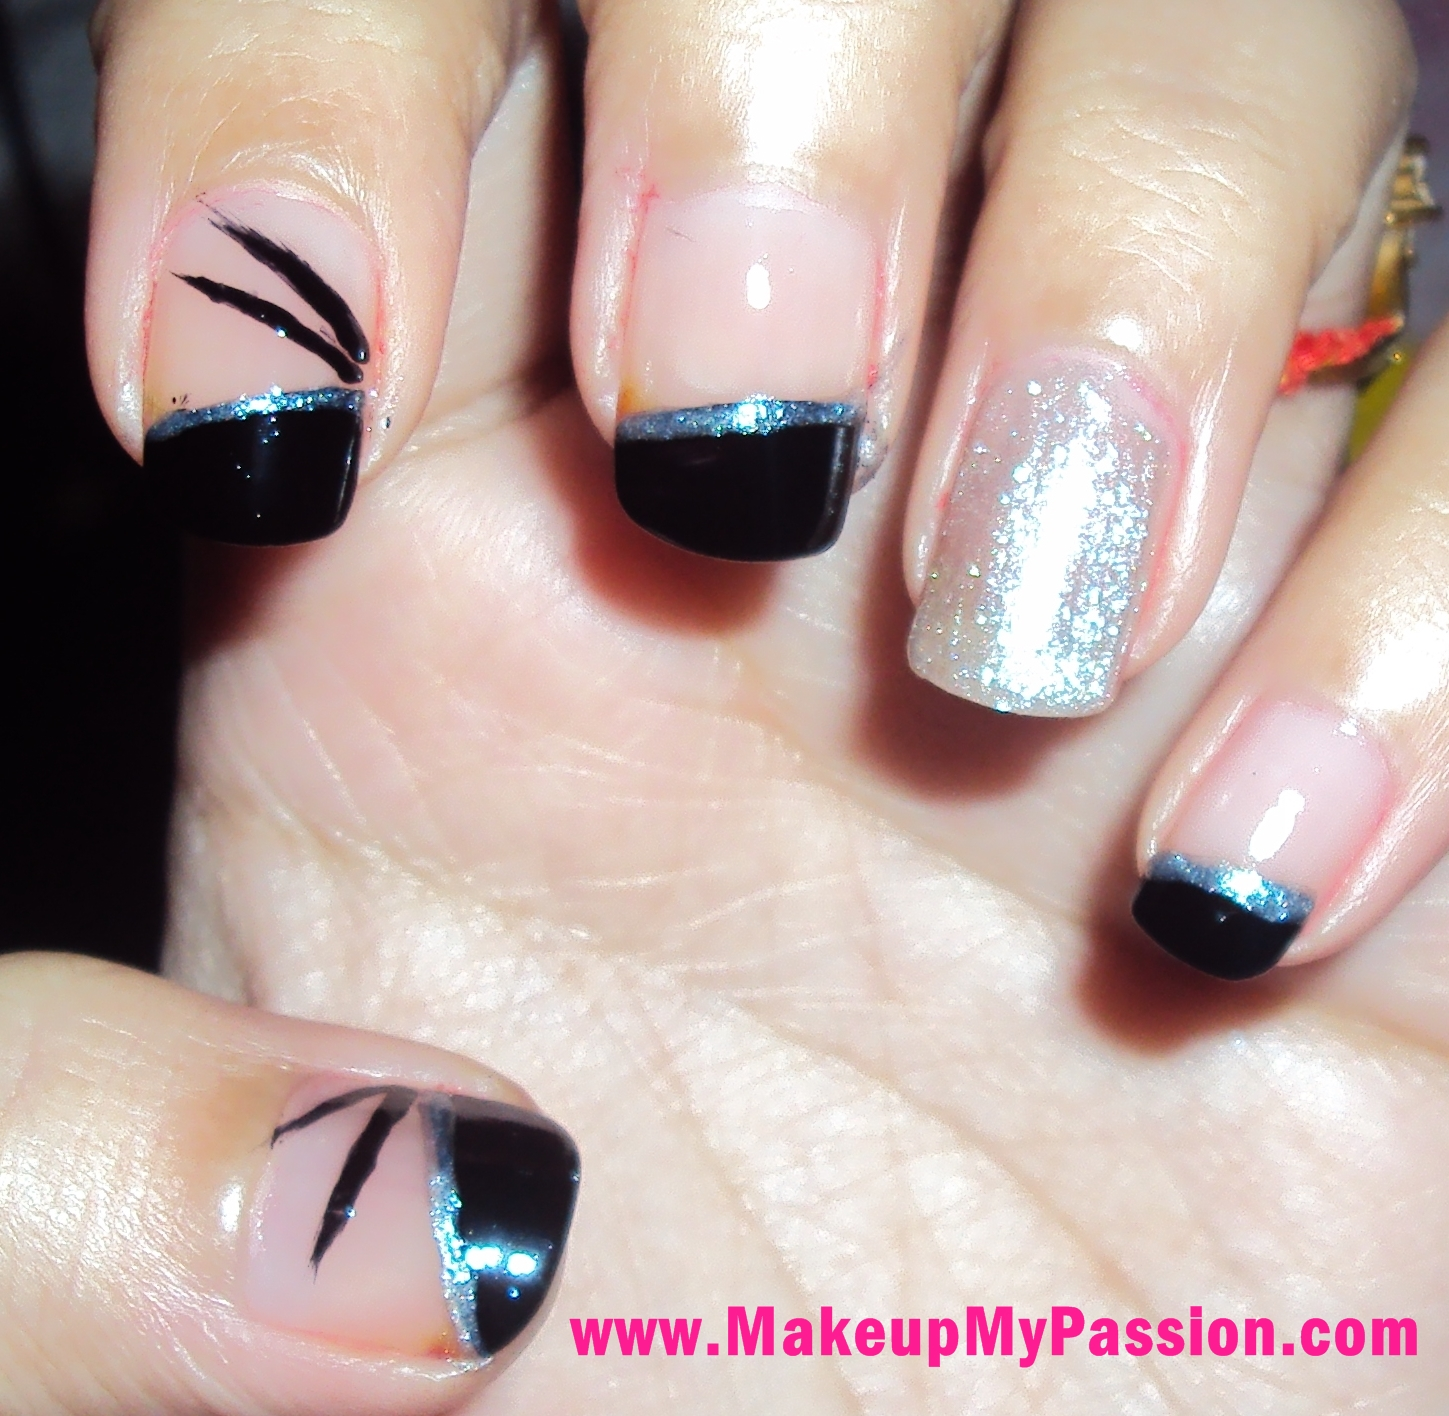 Makeup My Passion ...: NOTD : Black And Silver Nail Art